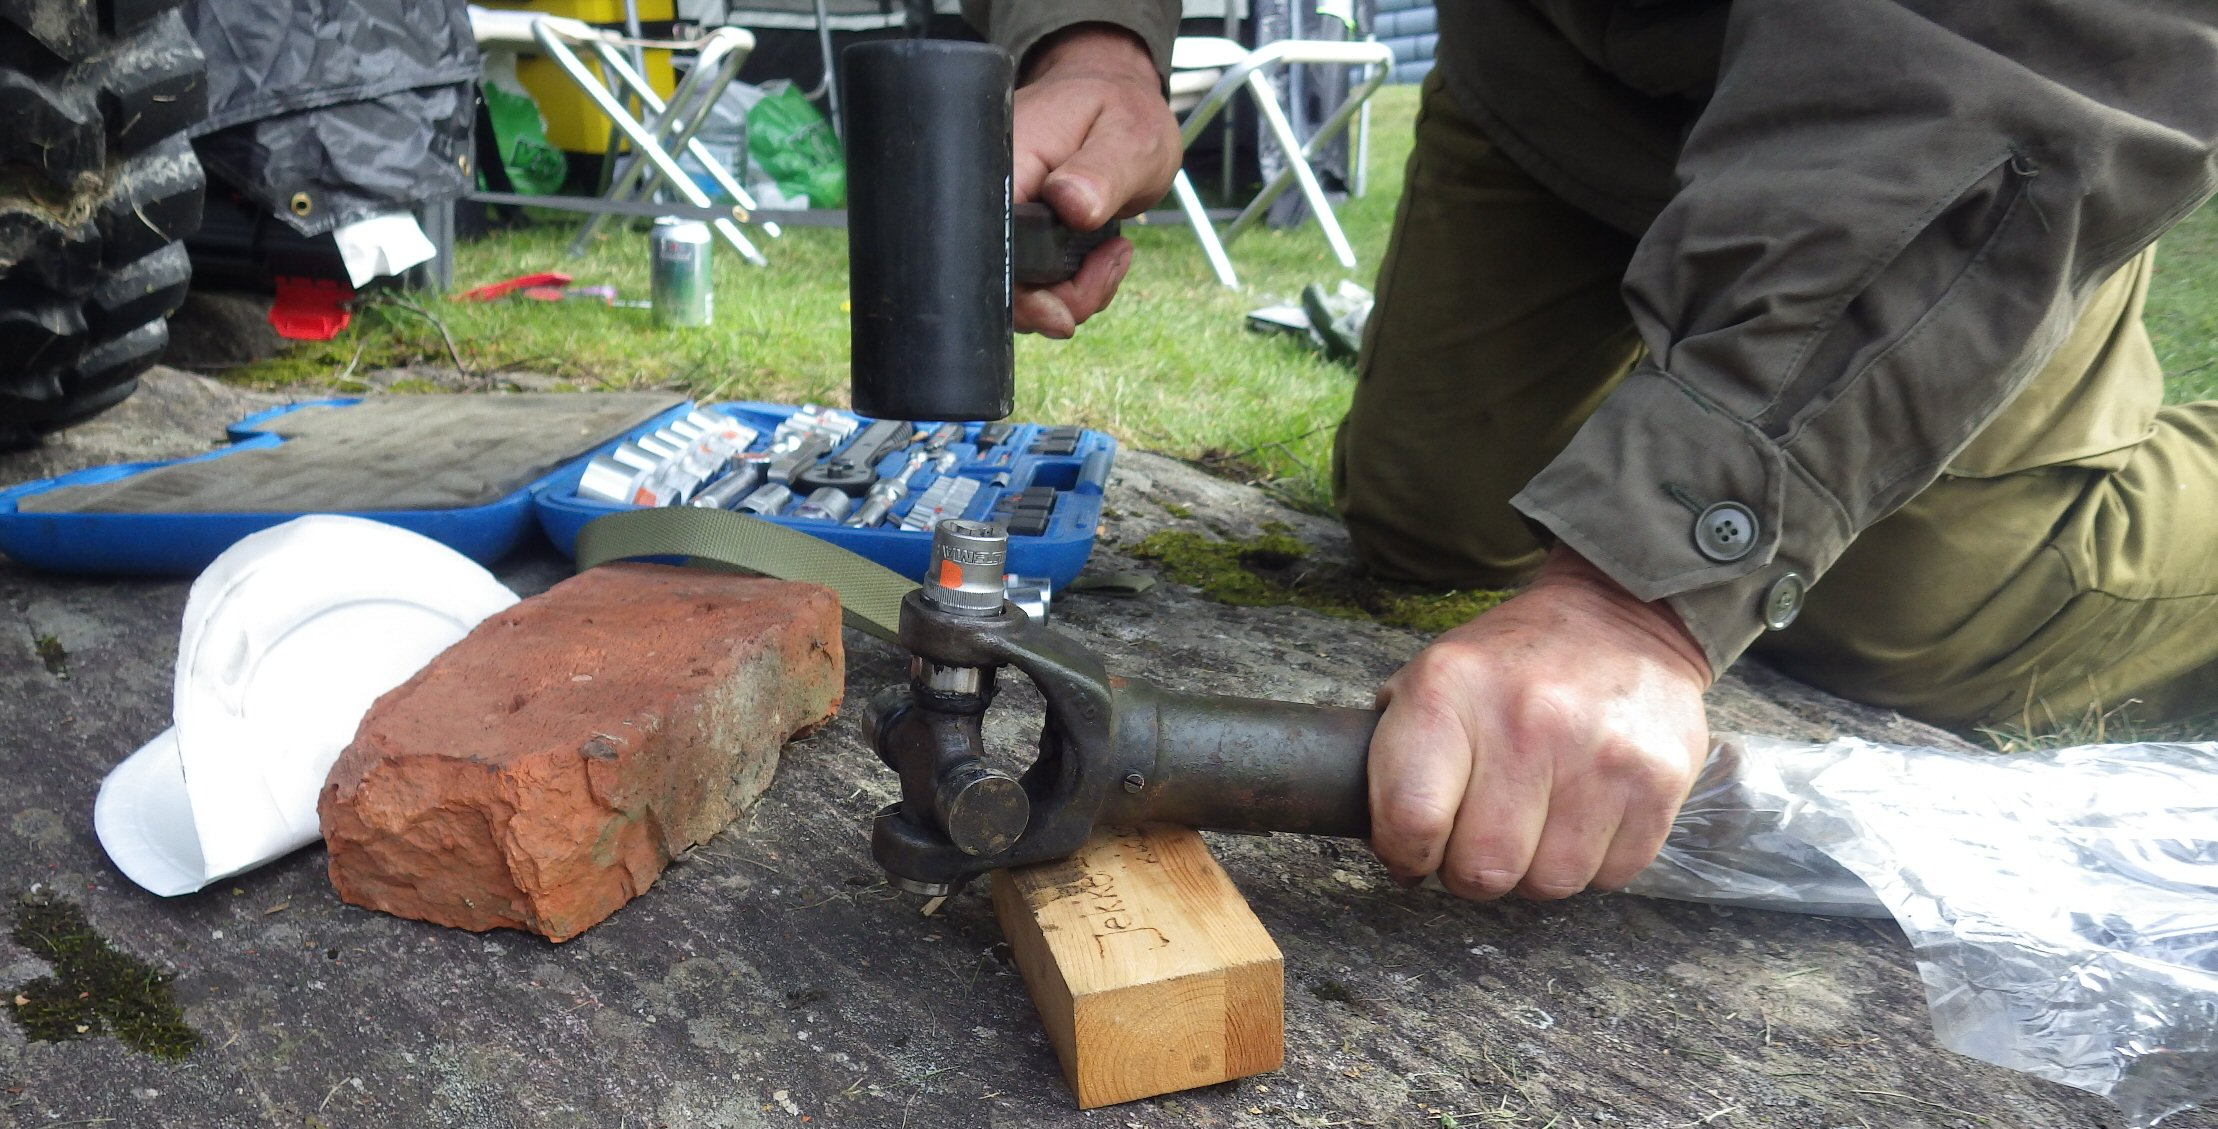 Removing the old universal joints